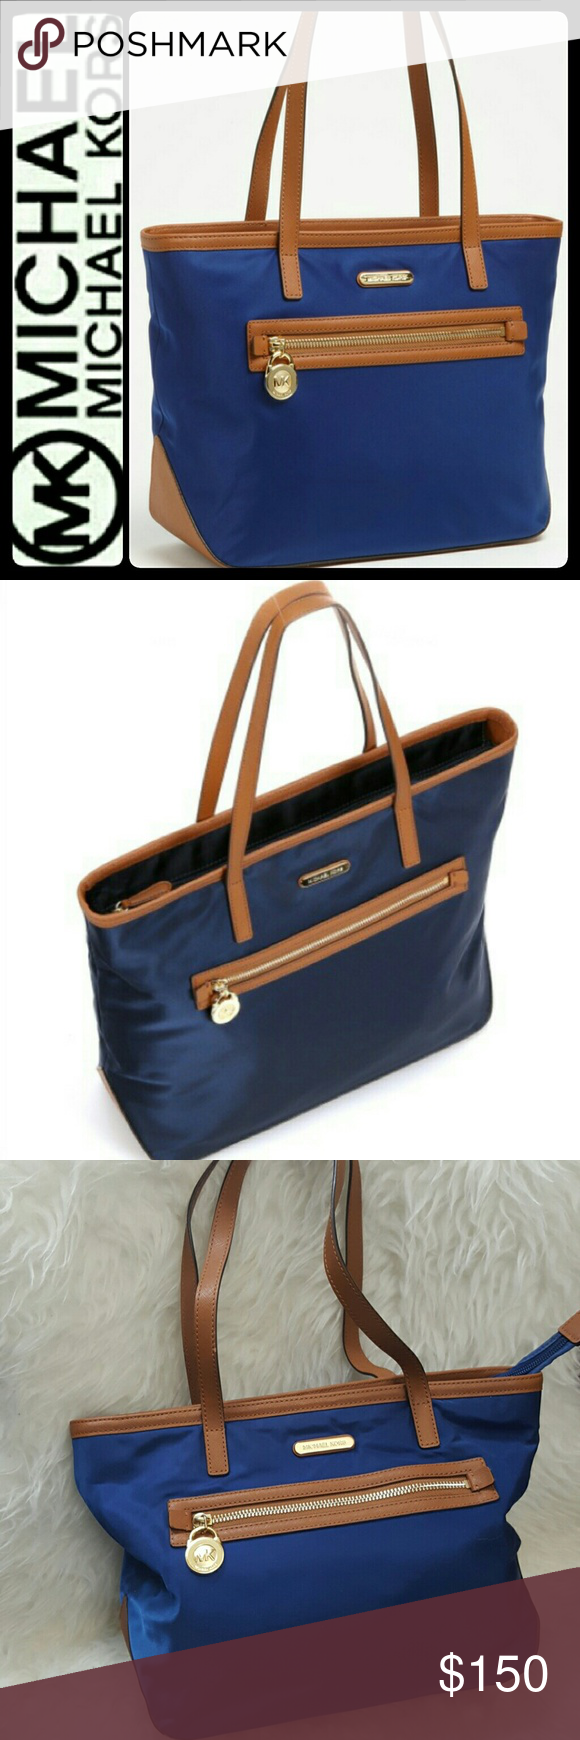 94e4bf26af26 Michael Kors Nylon Tote Shoulder Bag Michael by Michael Kors Signature Bag  in Sporty Chic Tote